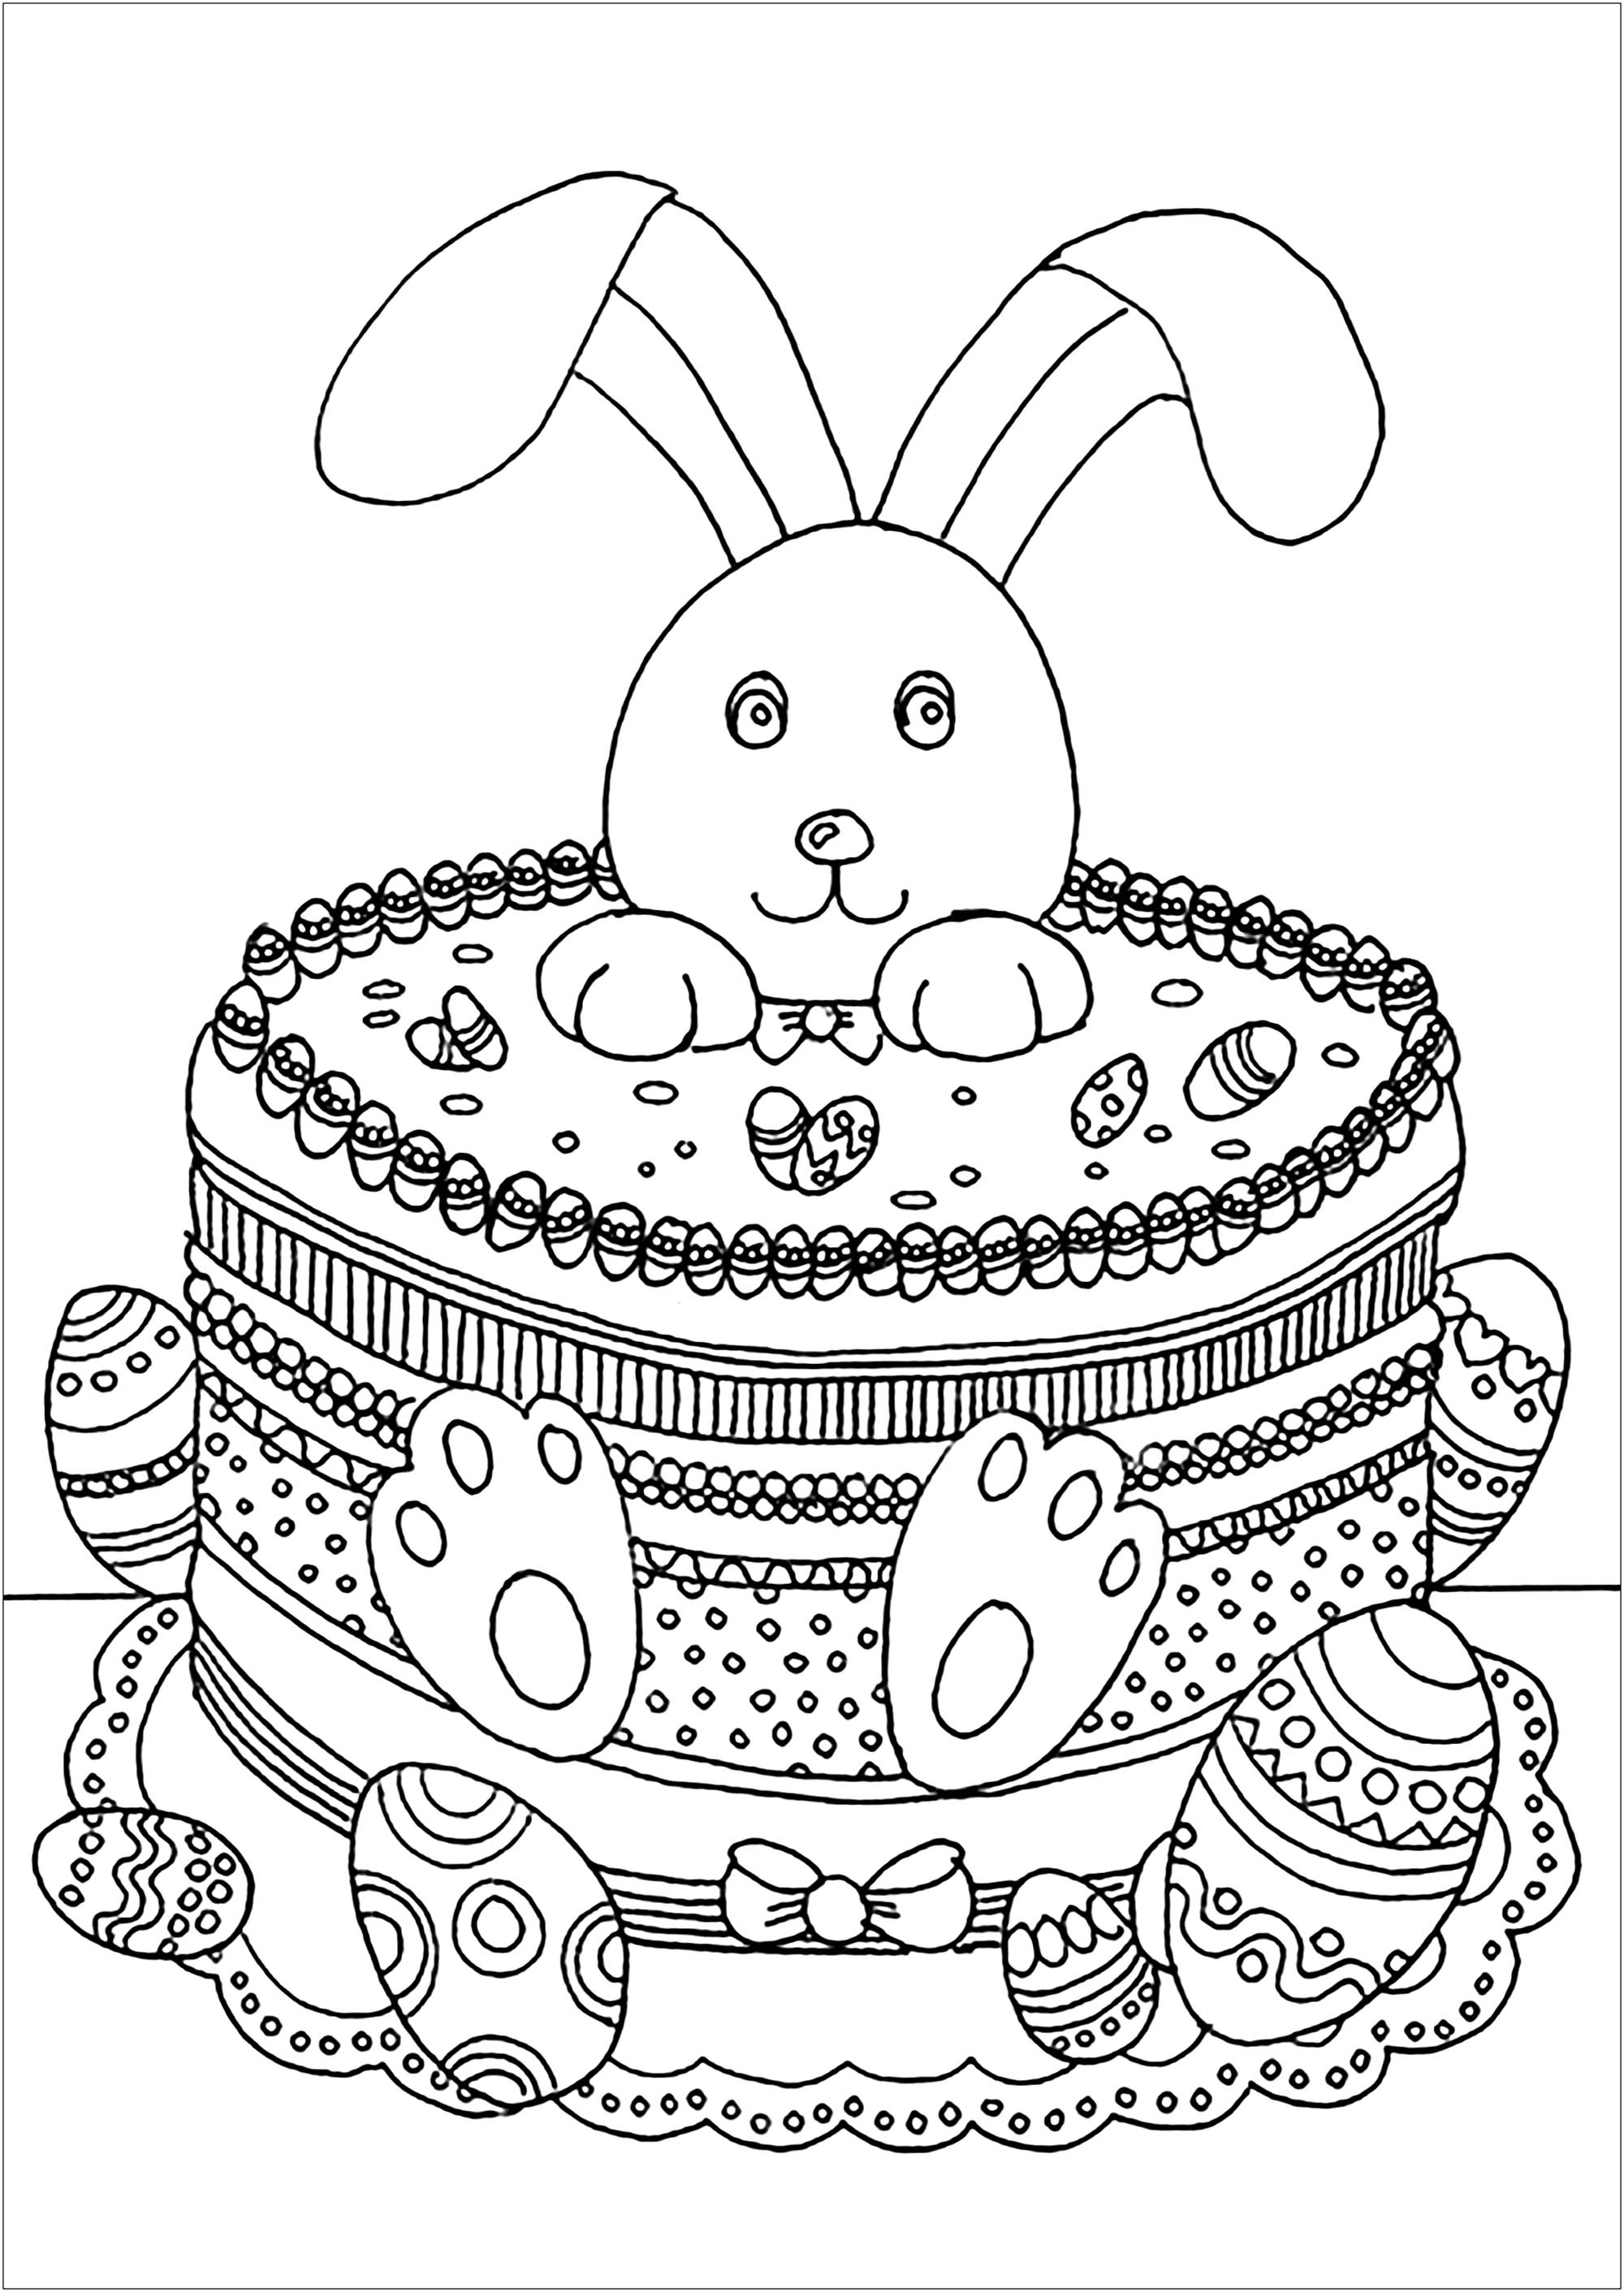 Easter rabbit - Easter Adult Coloring Pages